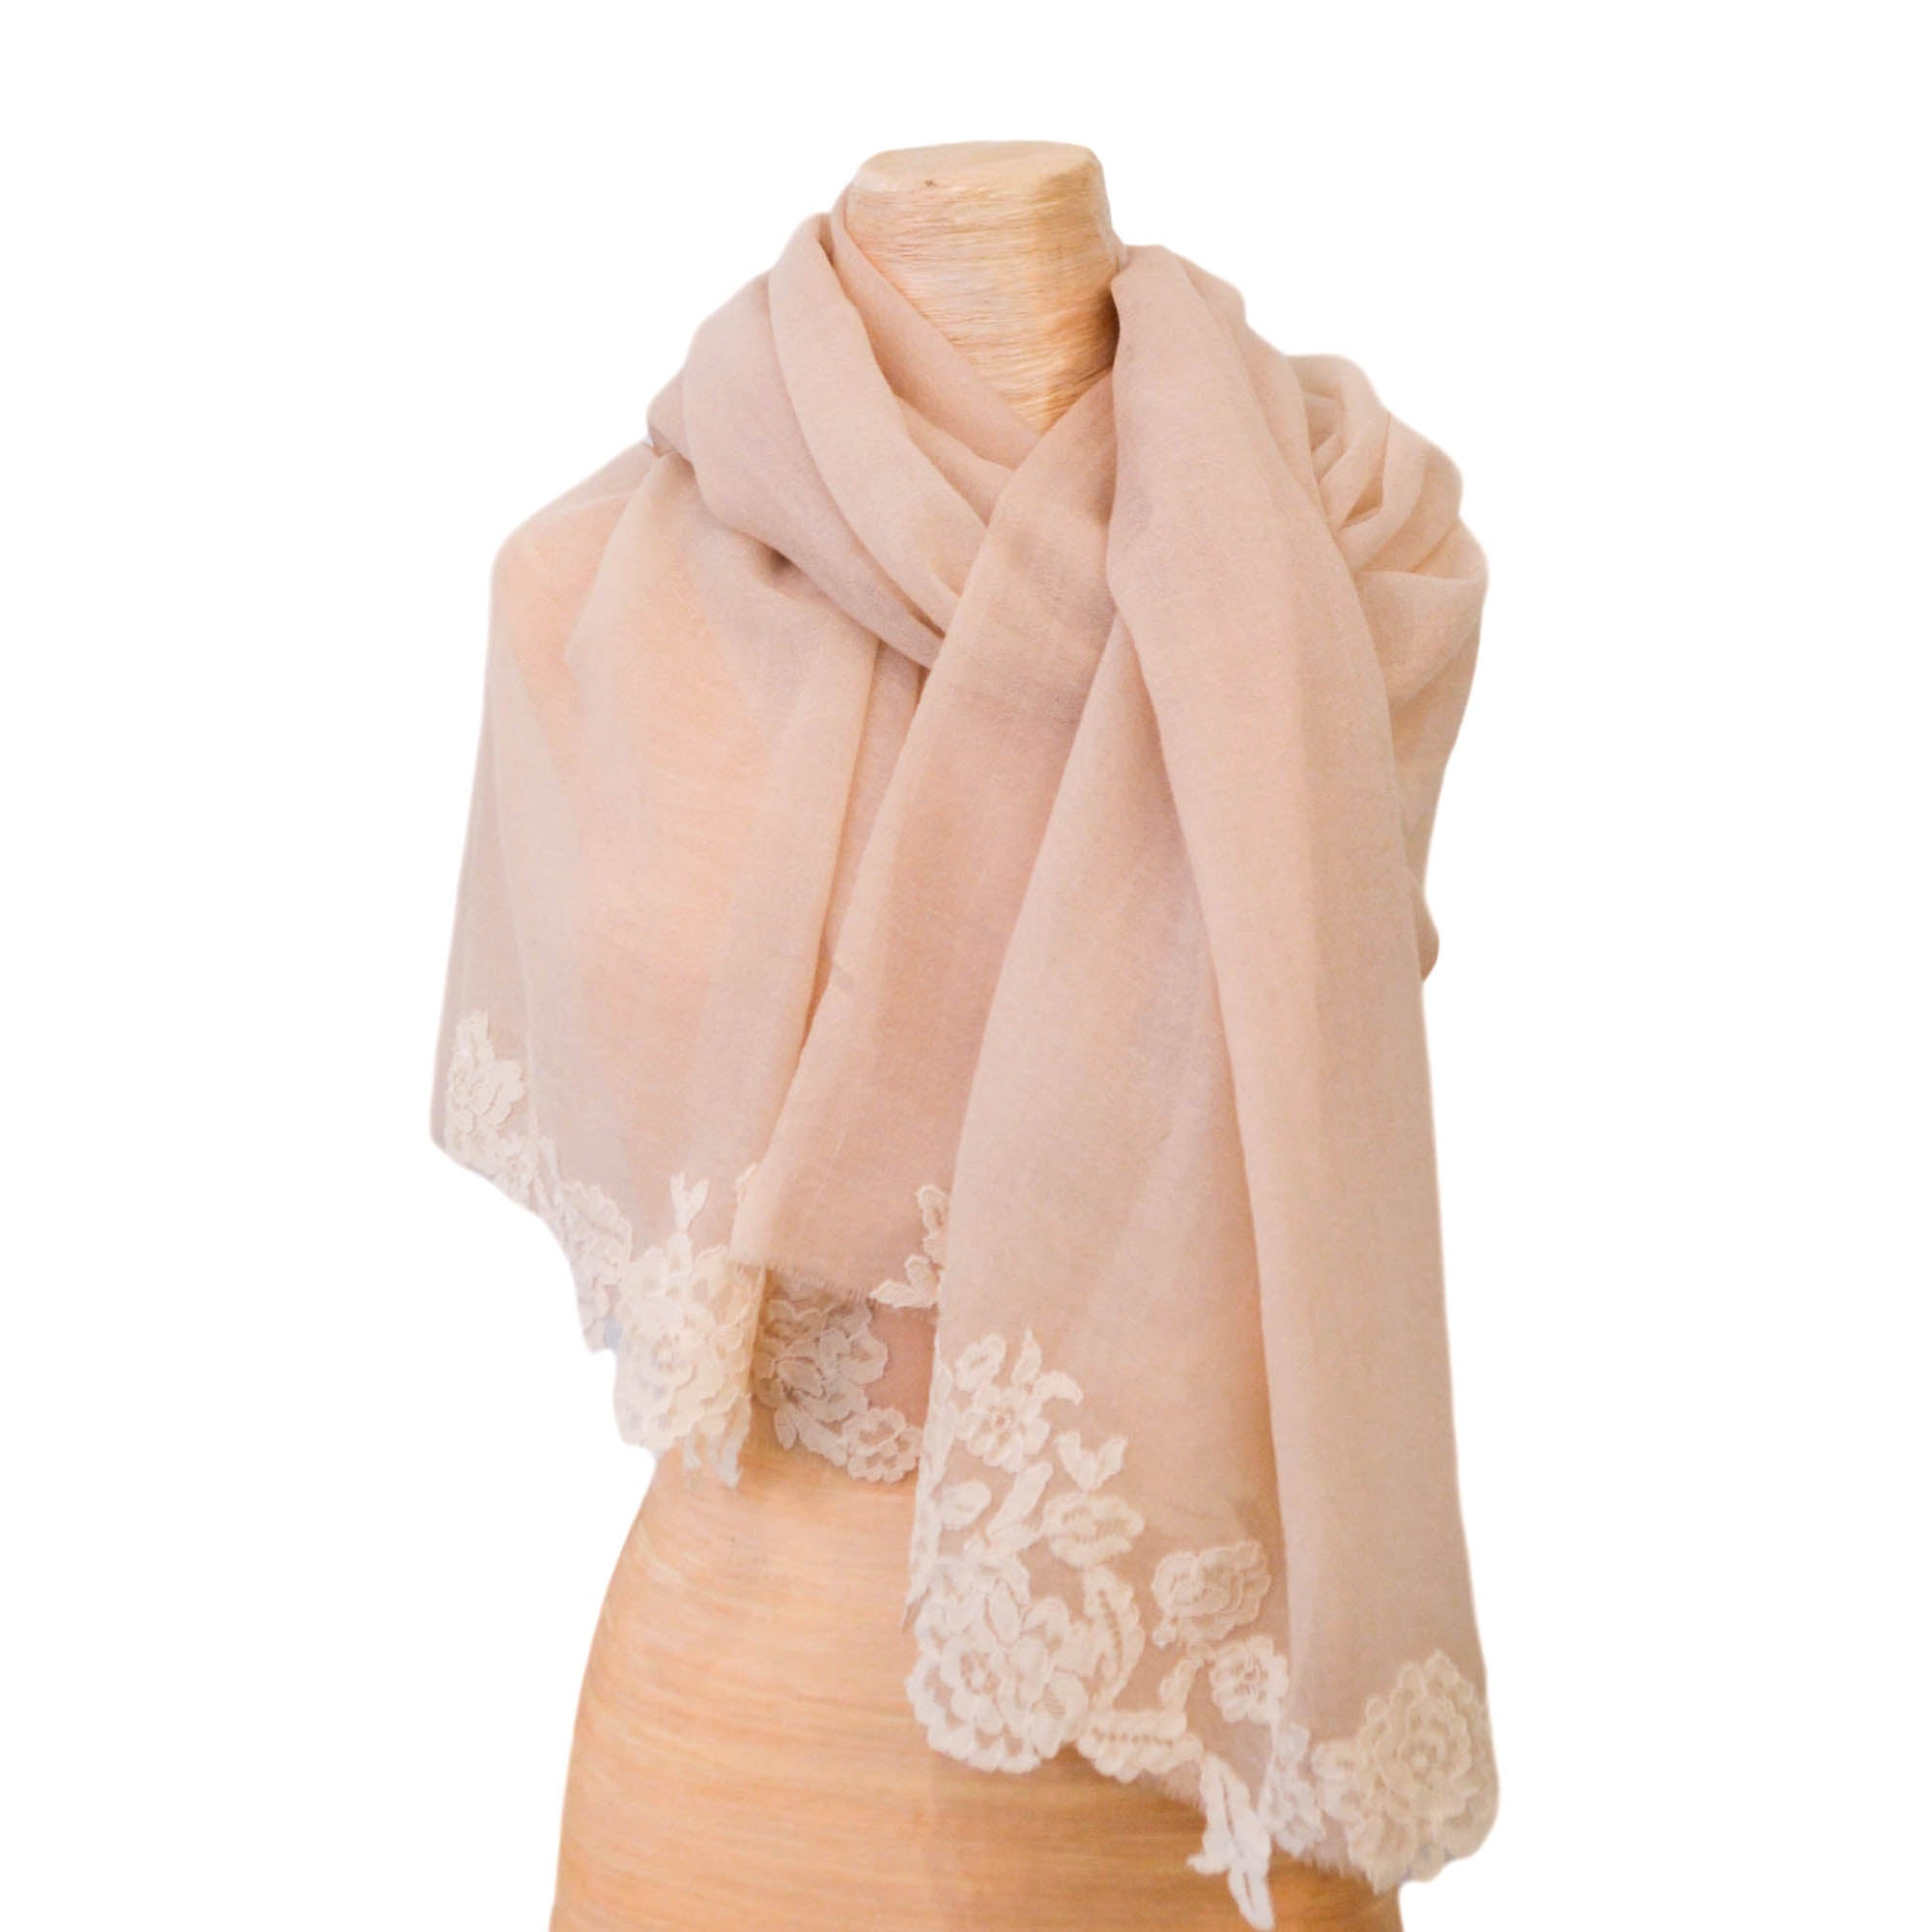 Pale Rose Shawl with Calais lace